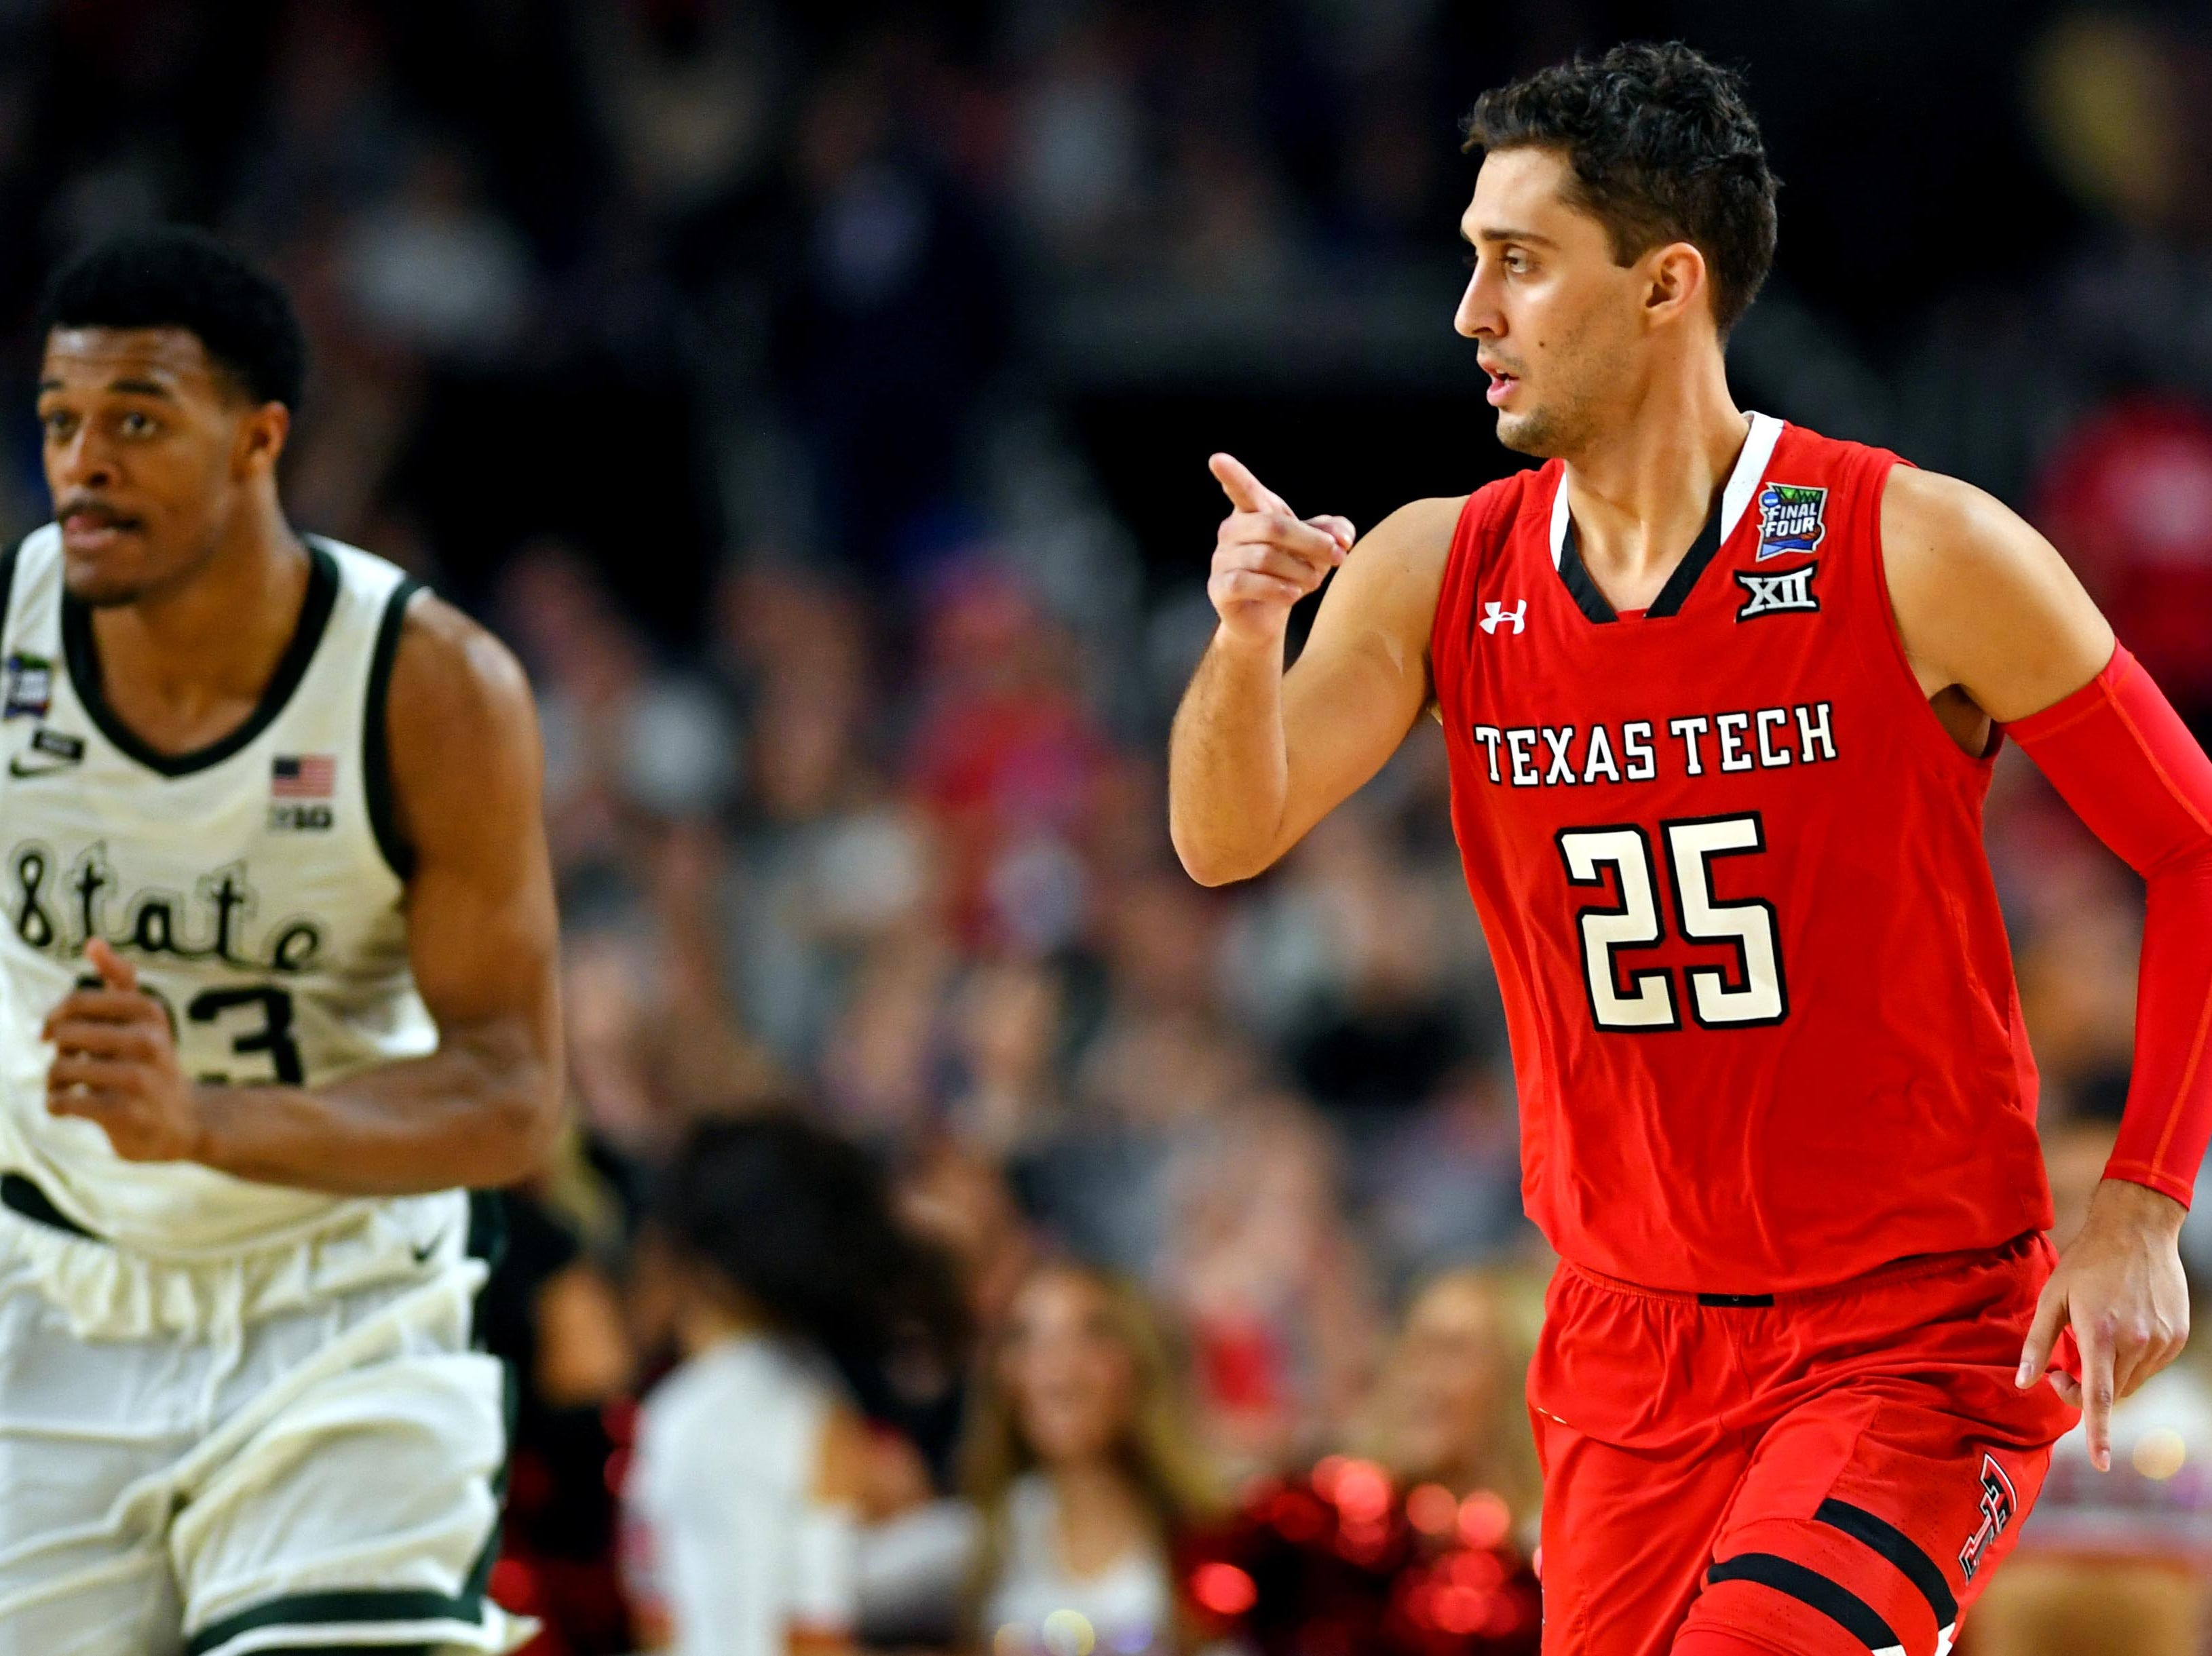 Apr 6, 2019; Minneapolis, MN, USA; Texas Tech Red Raiders guard Davide Moretti (25) reacts after a play during the second half against the Michigan State Spartans in the semifinals of the 2019 men's Final Four at US Bank Stadium. Mandatory Credit: Bob Donnan-USA TODAY Sports